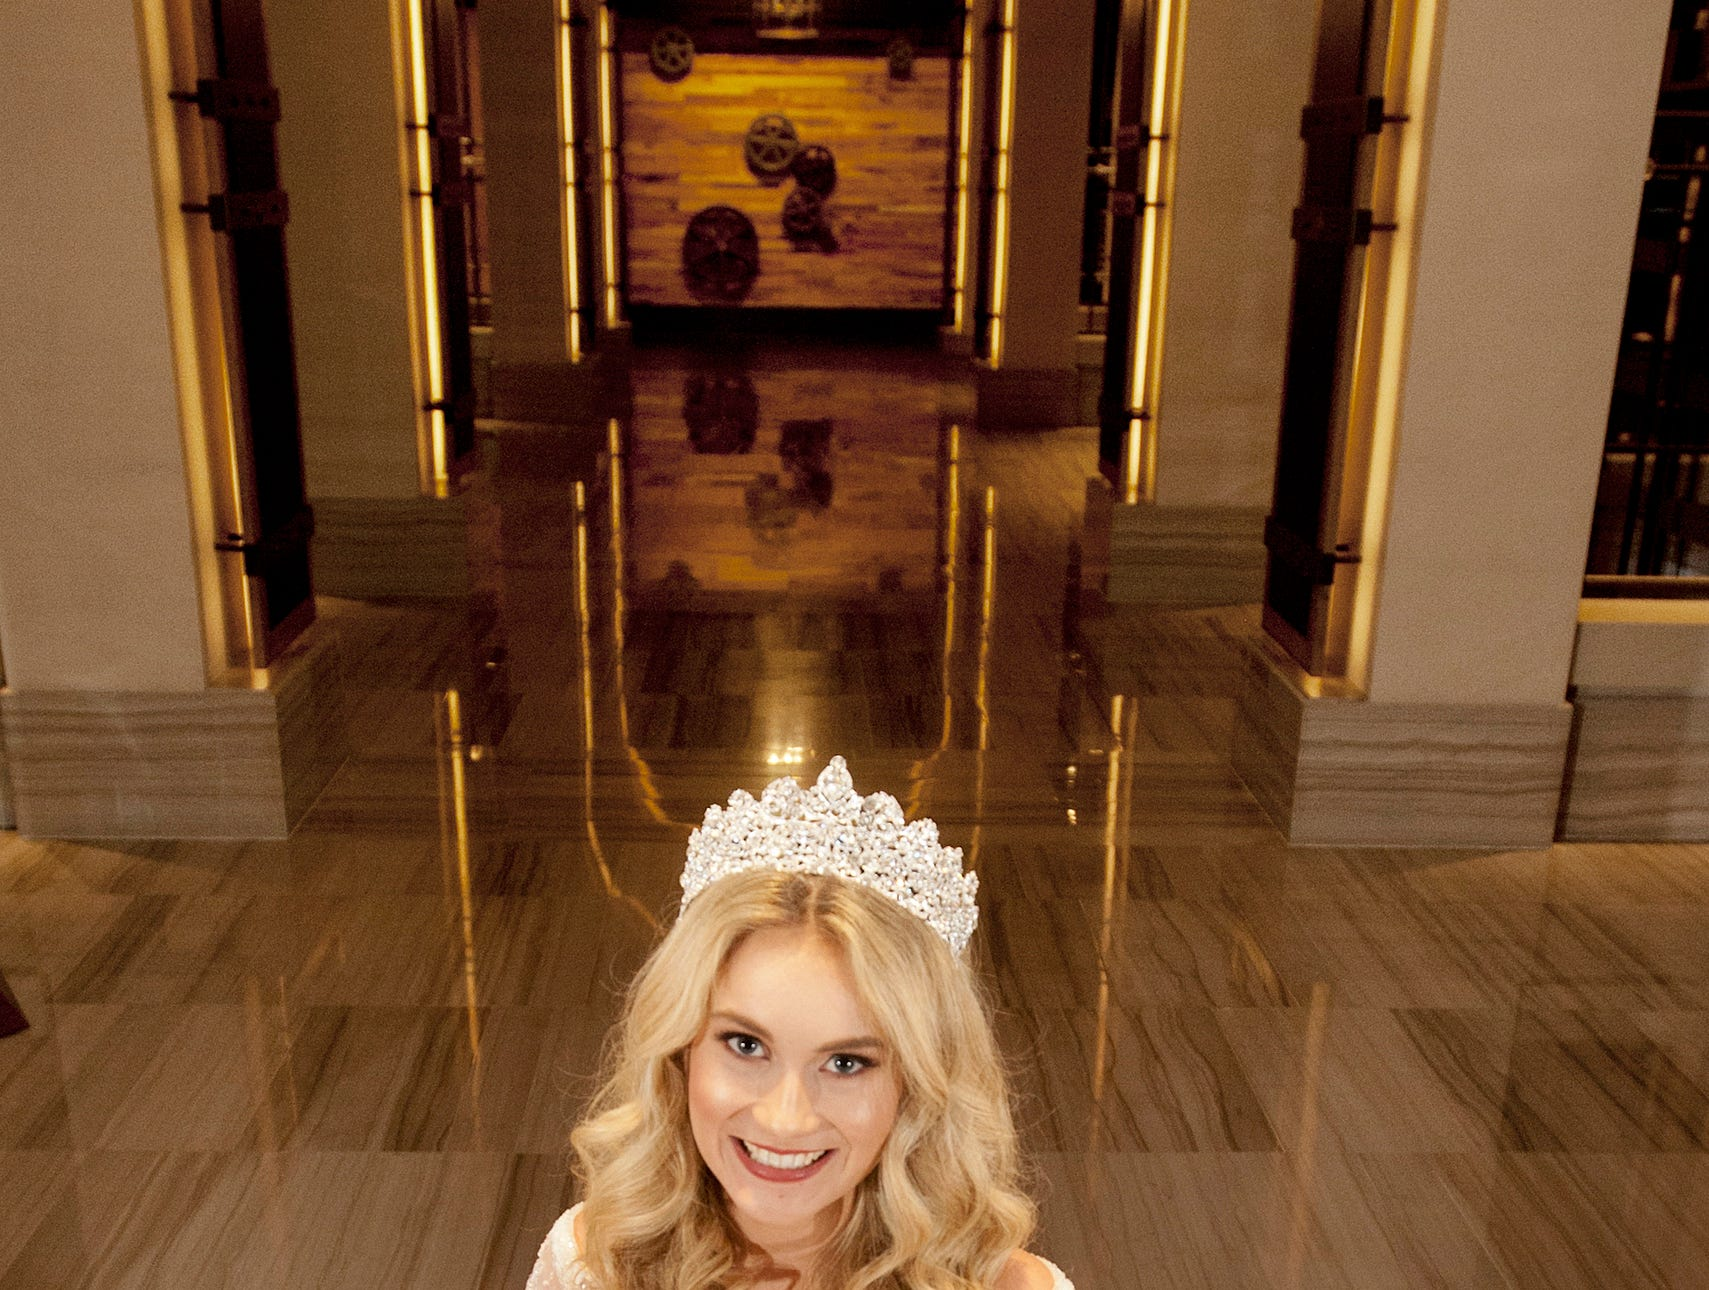 Kentucky Derby Festival Princess Allison Spears, 21, of Catlettsburg, Kentucky, is a junior at the University of Kentucky majoring in pre-law and neuroscience. She was posing in the arched hallway off the Omni Louisville Hotel lobby. 06 January 2019